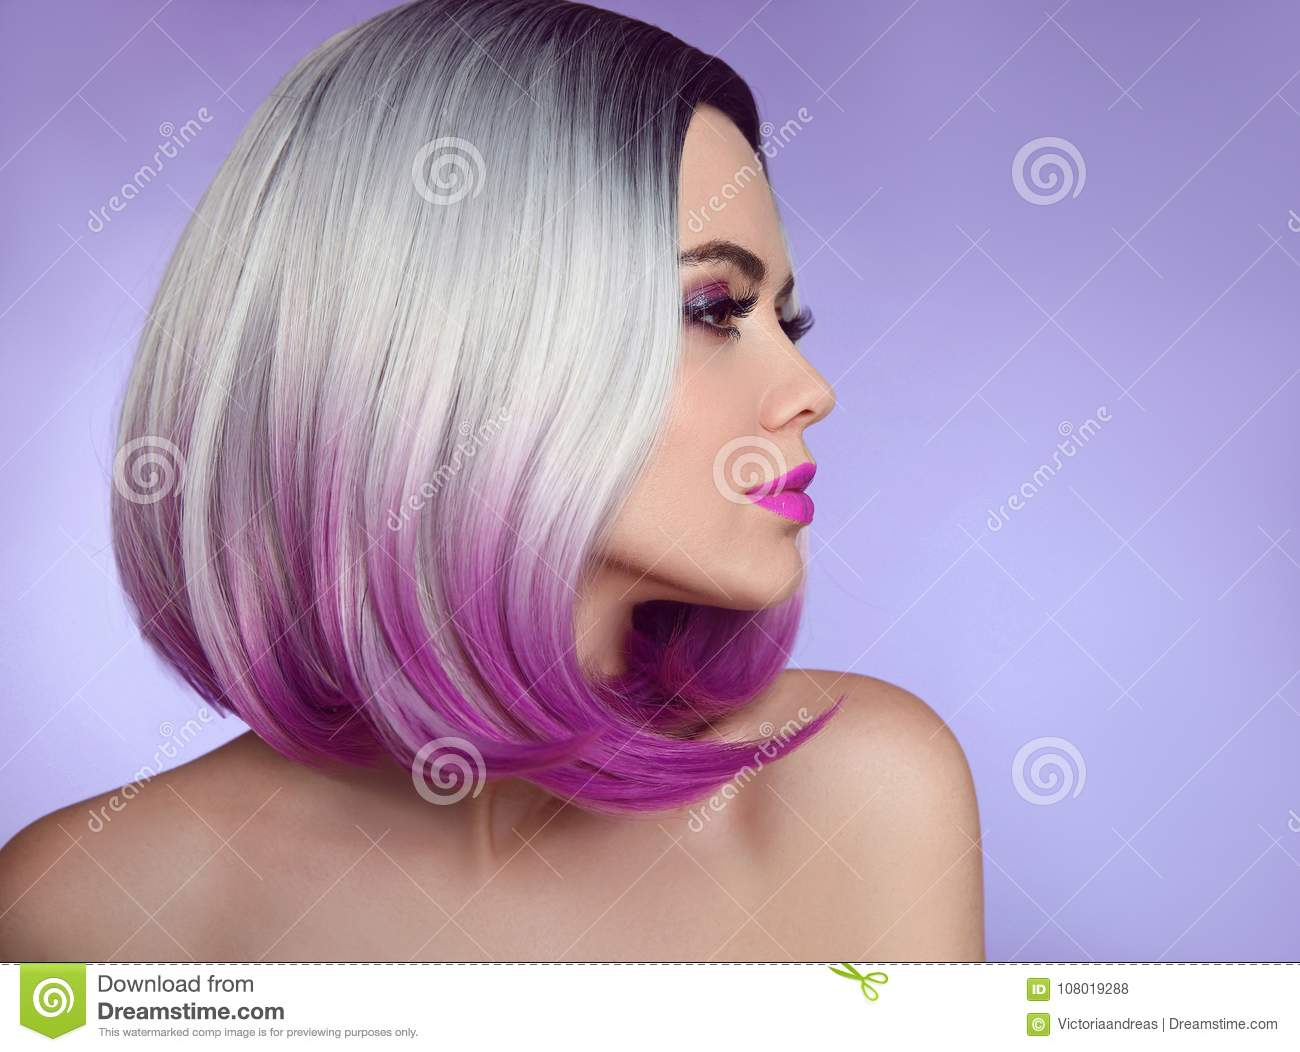 Colorful Dyed Ombre Hair Extensions Fashion Haircut Beauty Mod